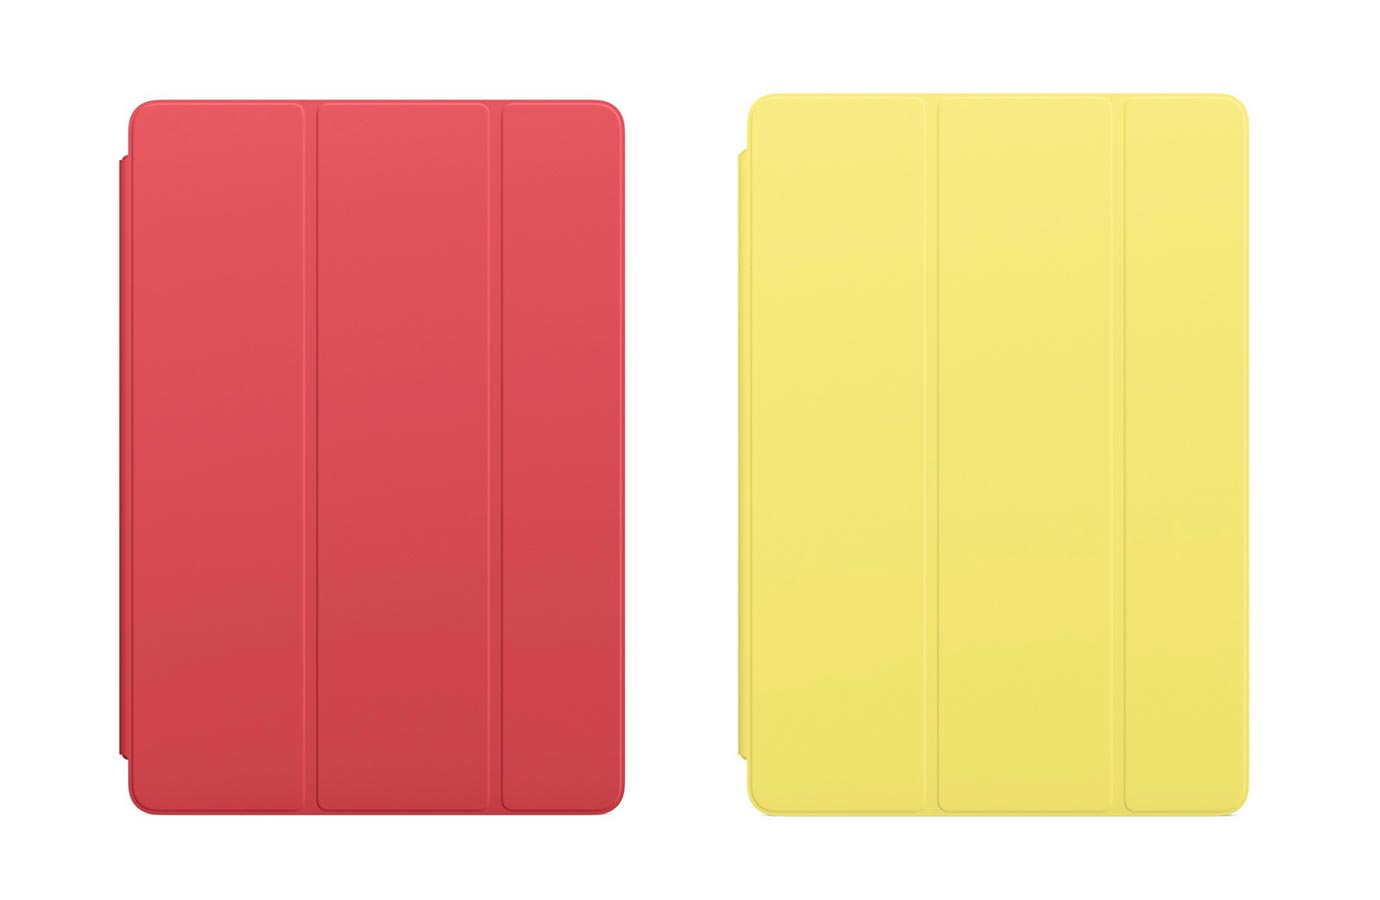 Ipadpronewsmartcover